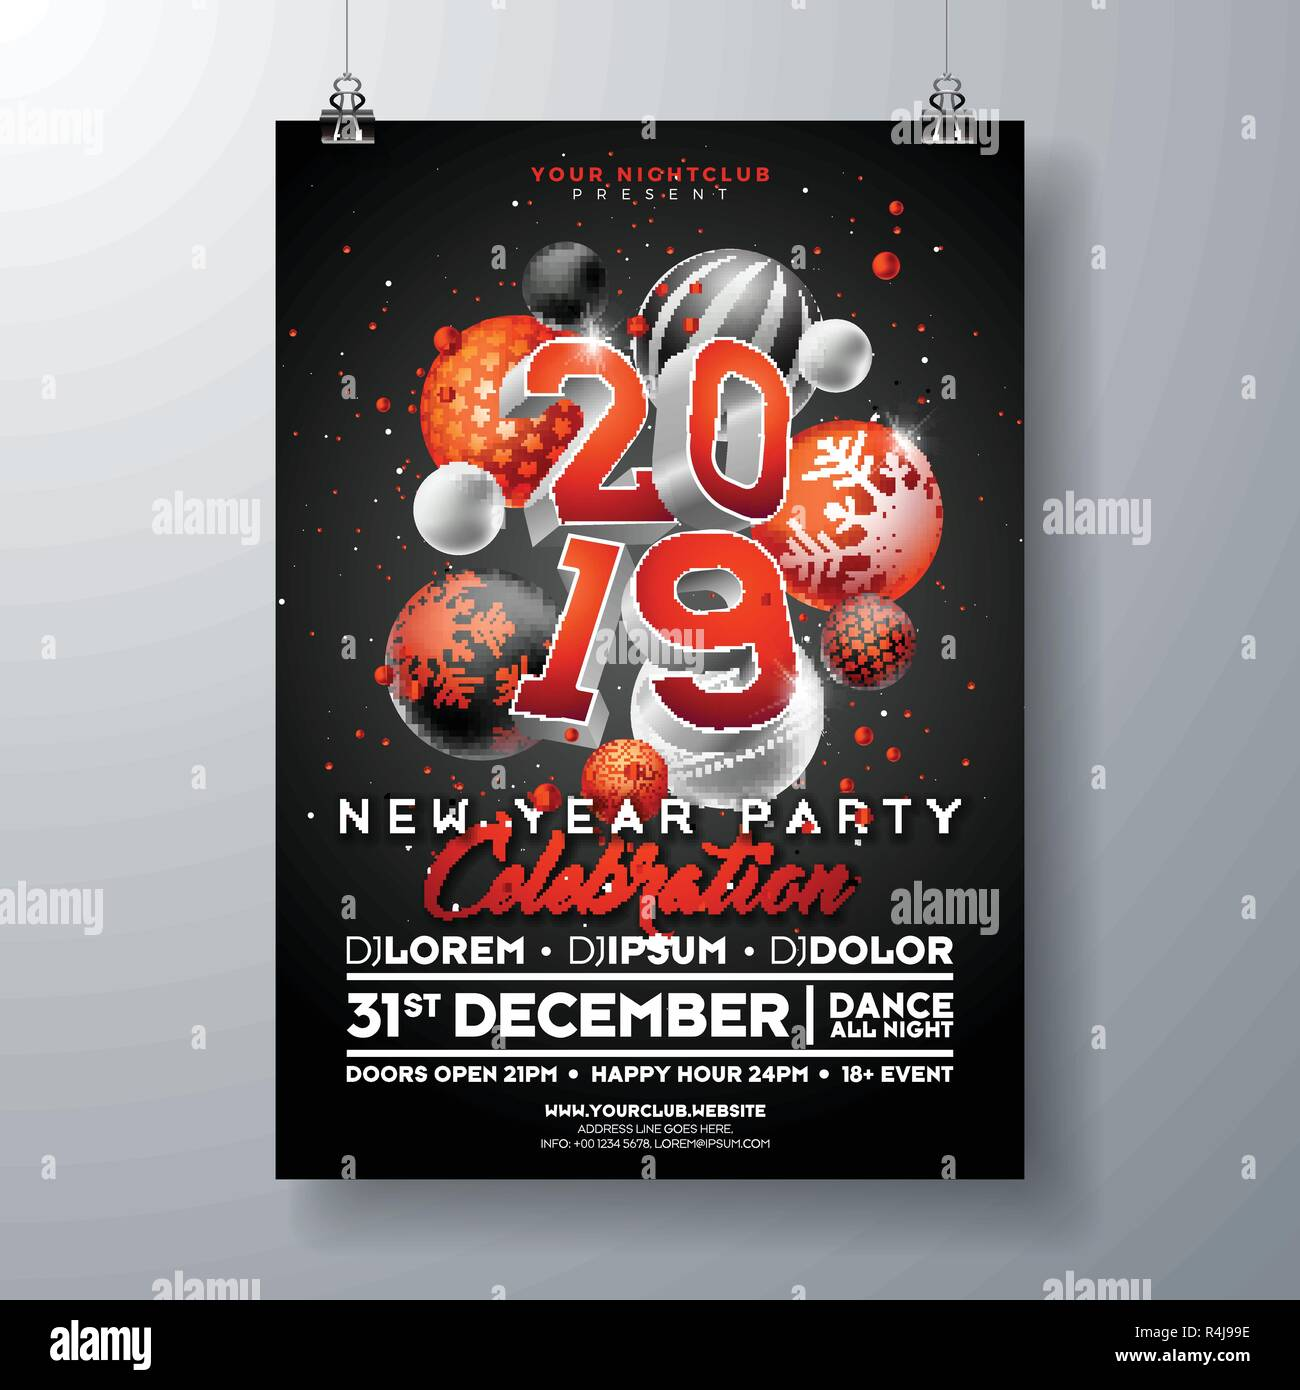 new year party celebration poster template illustration with 3d 2019 number and christmas ball on black background vector holiday premium invitation flyer